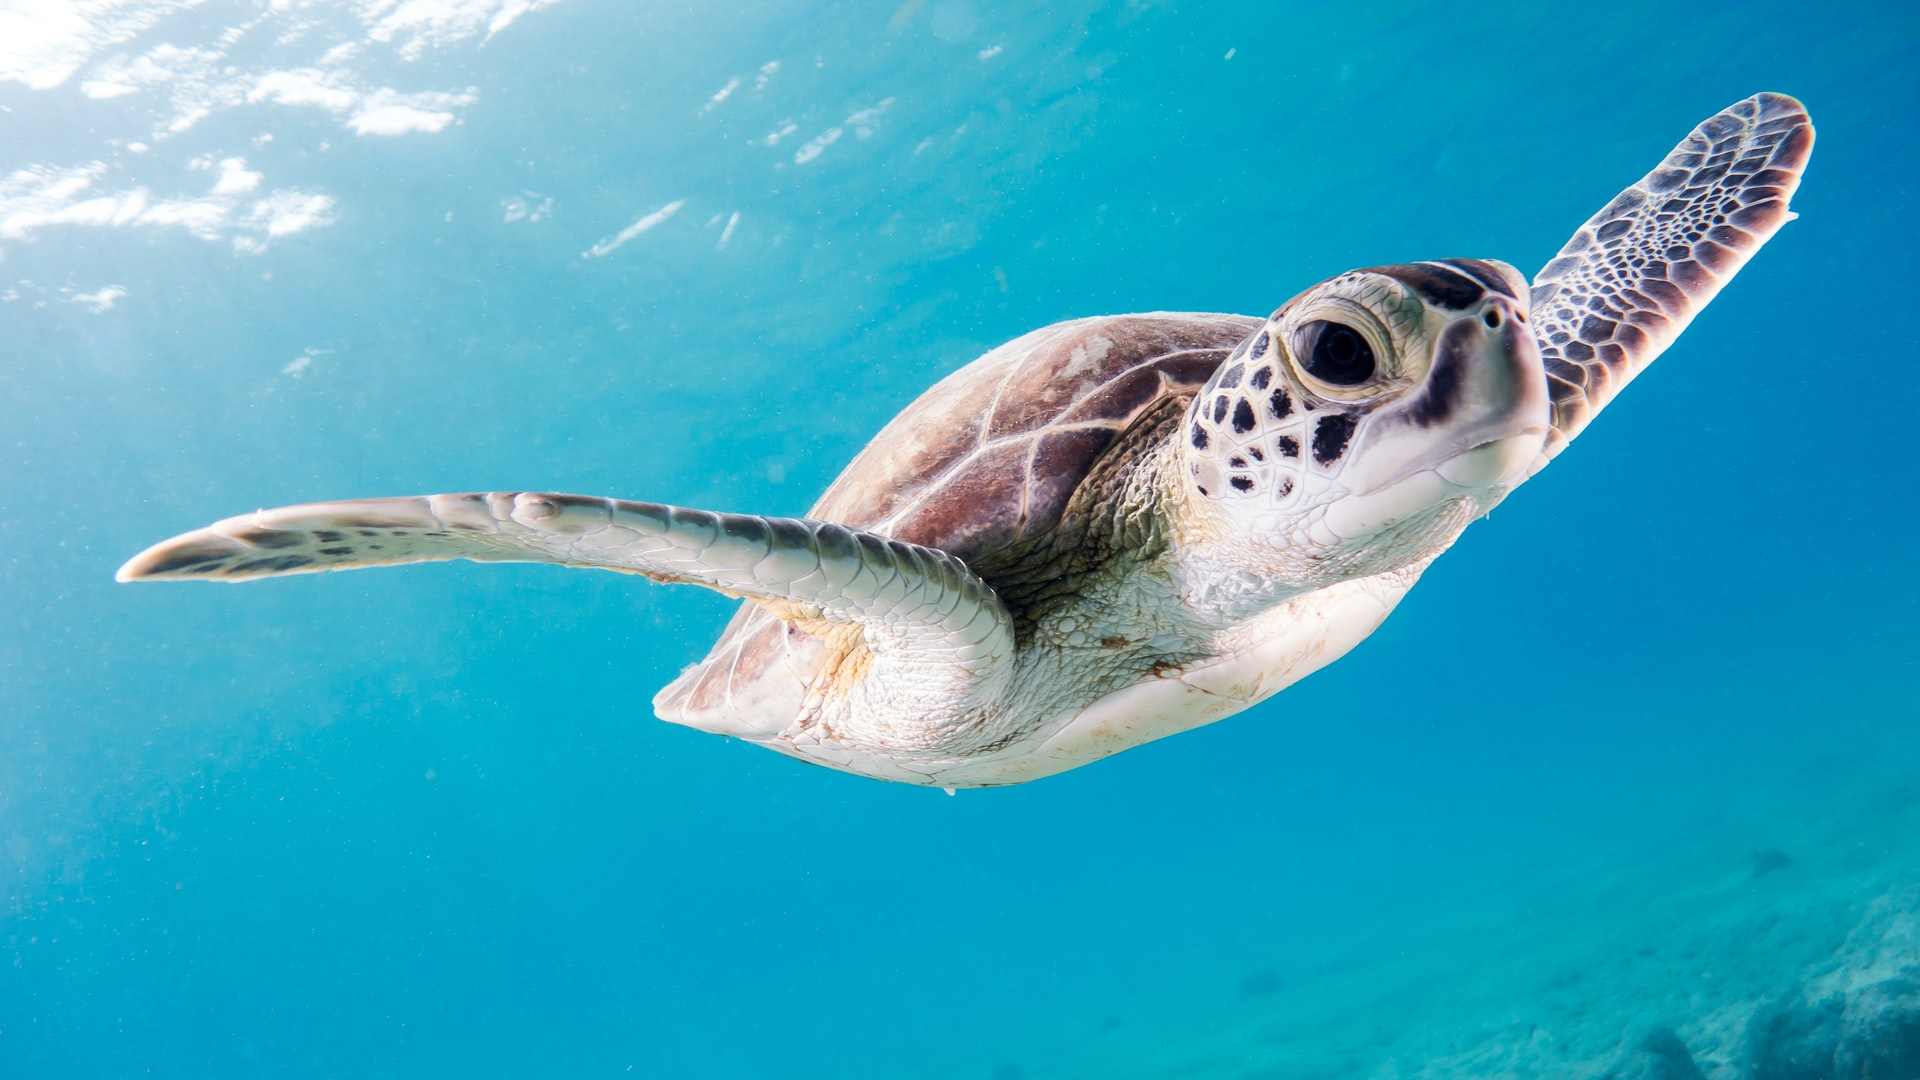 Gumbo Limbo Nature Center: A Must-Visit Attraction for Animal Lovers